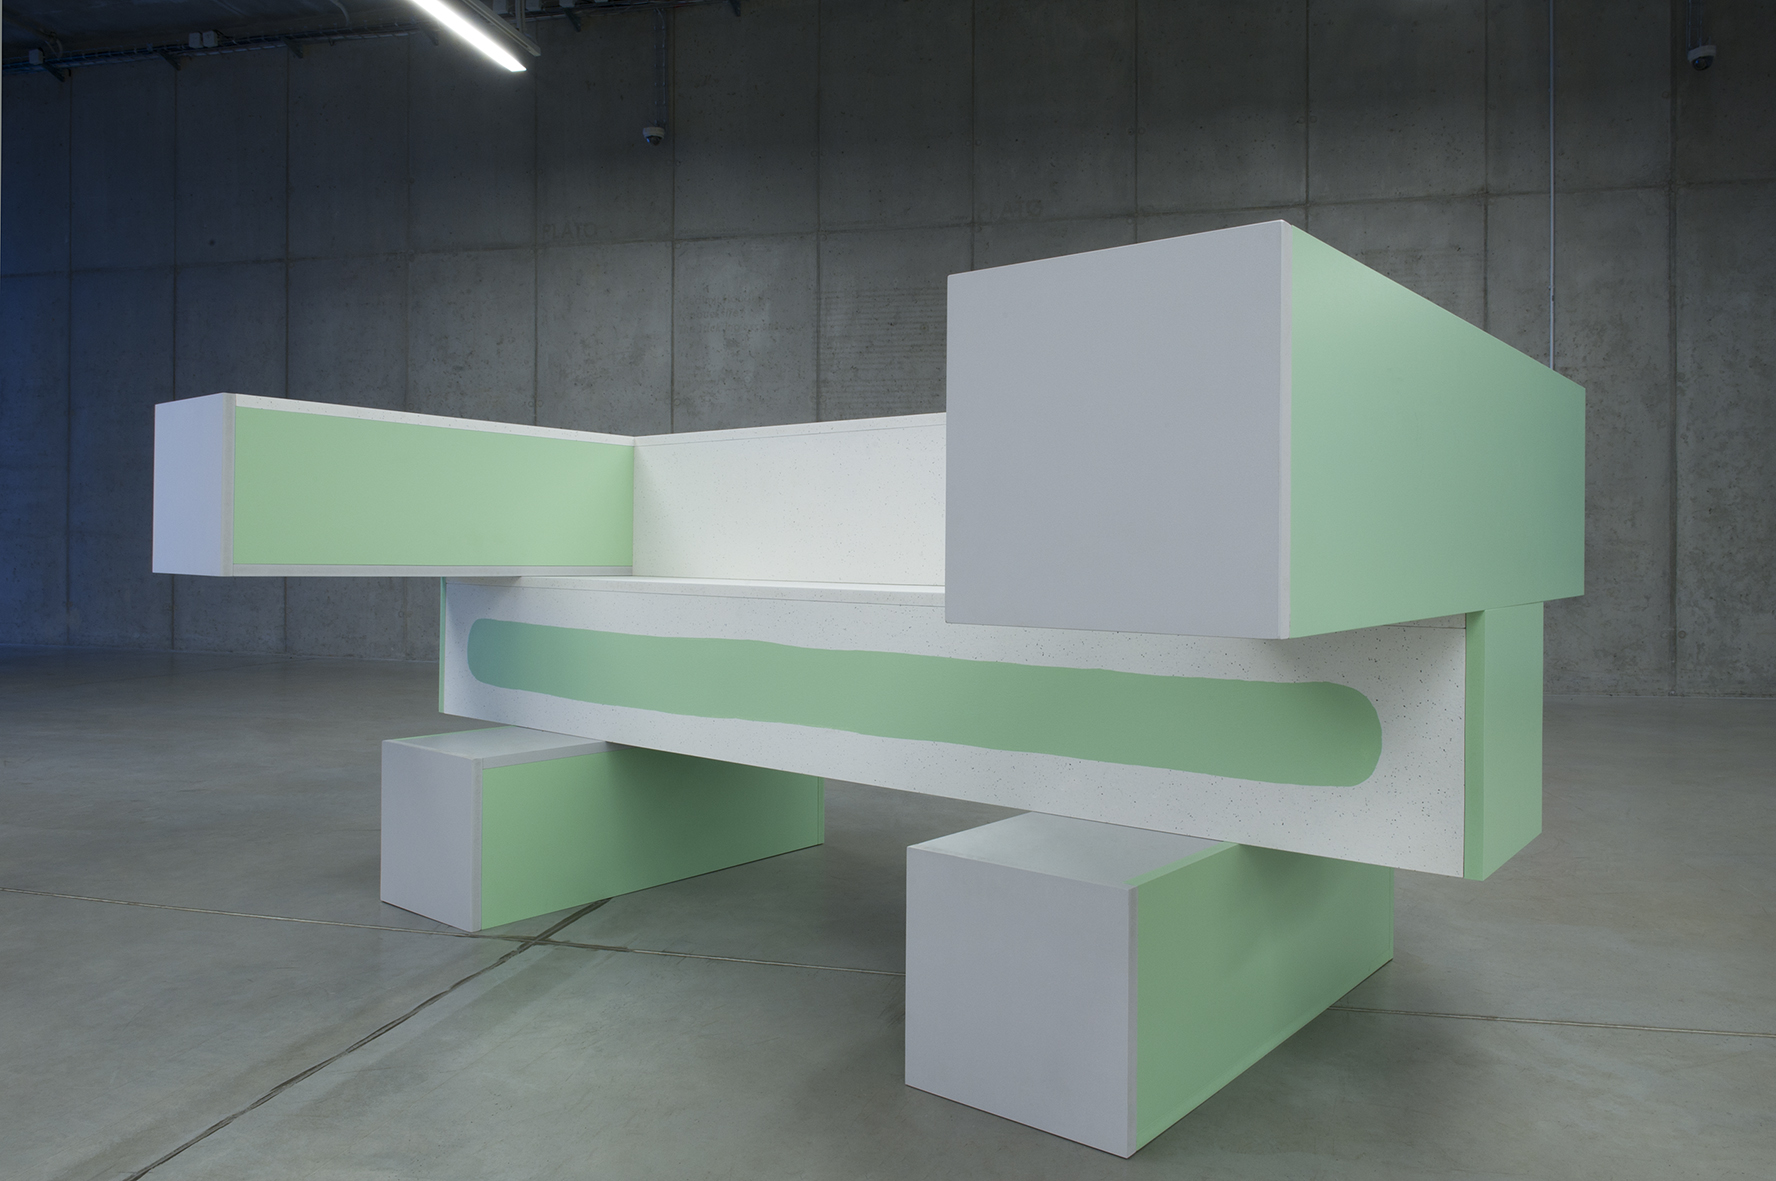 The Exhibition, Nicholas Riis, Objective Display, installation, 2015